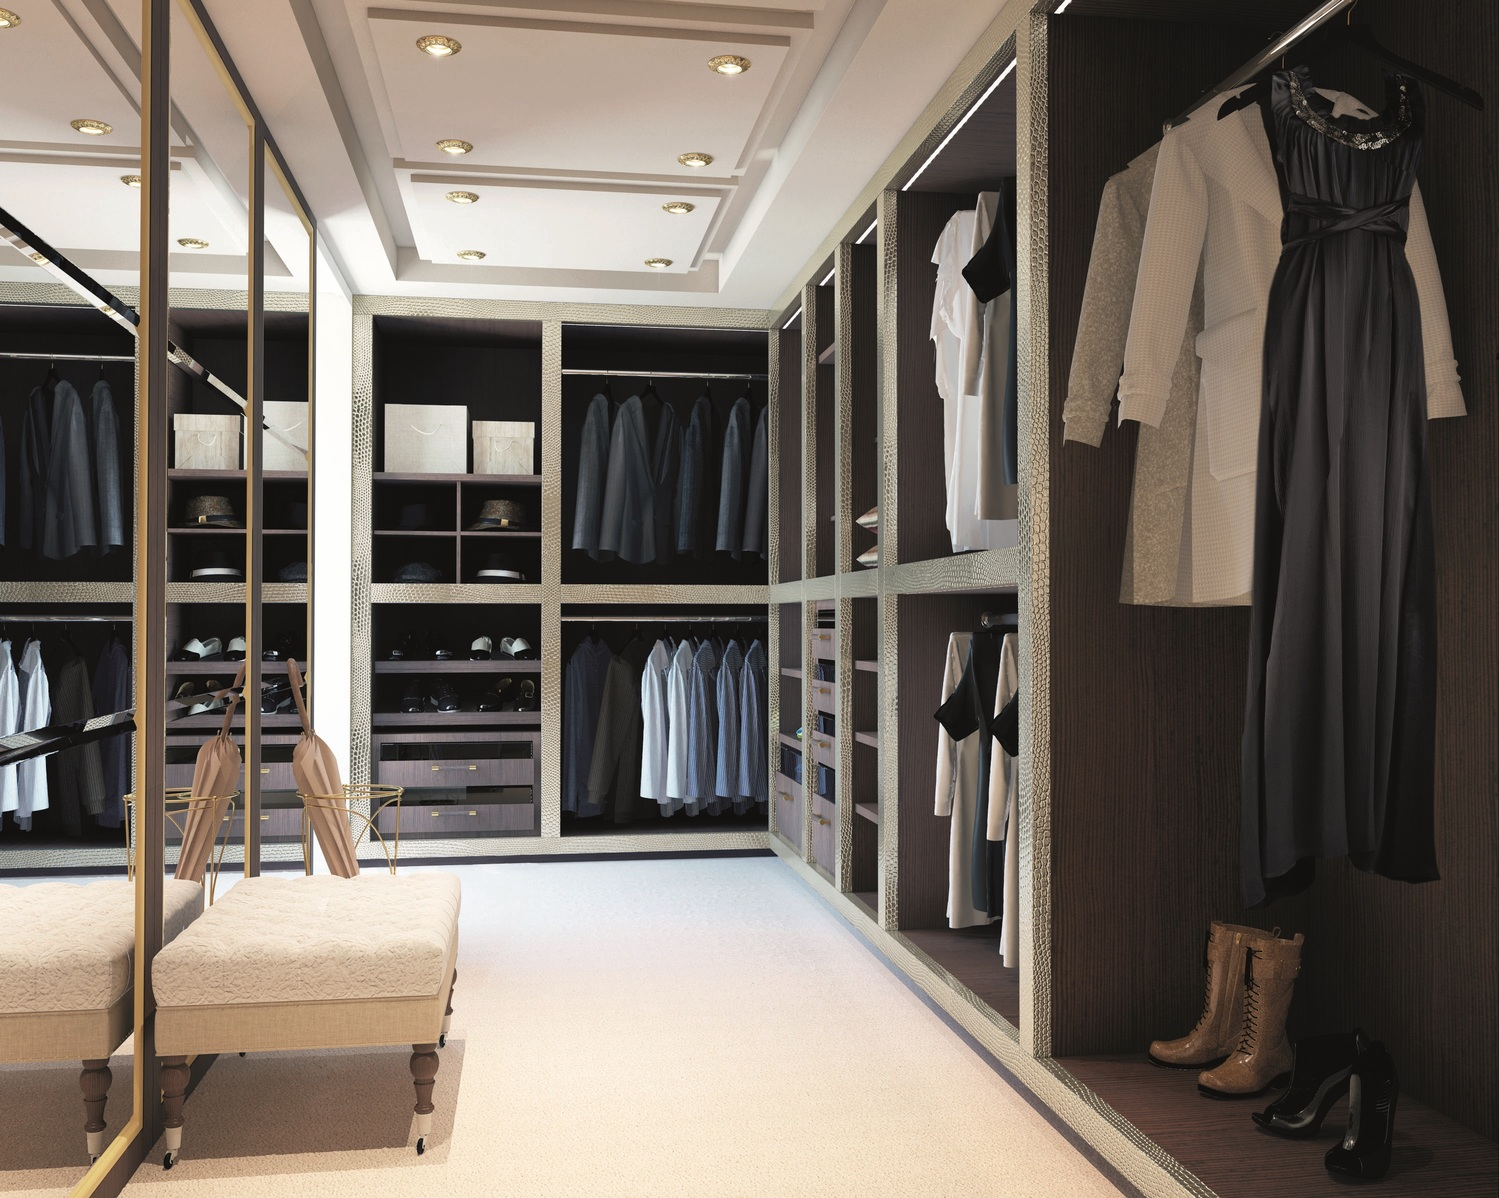 35 images of wardrobe designs for bedrooms for Bedroom walk in closet designs